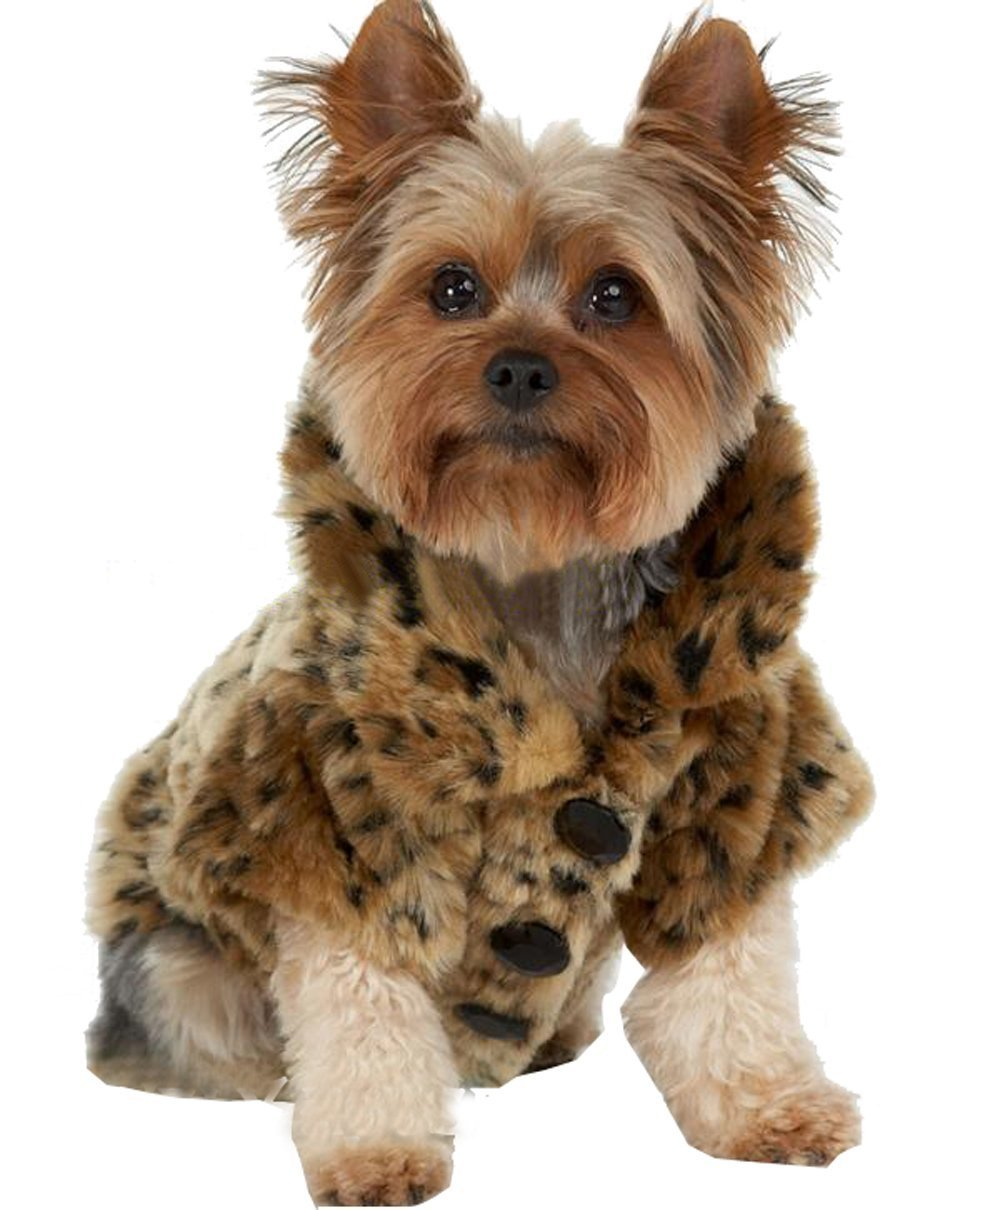 WISHLAND Dog Jacket Luxury Leopard Faux Fur Jacket Winter Clothes Pet Dogs Coat for Autumn and Winter Wearing